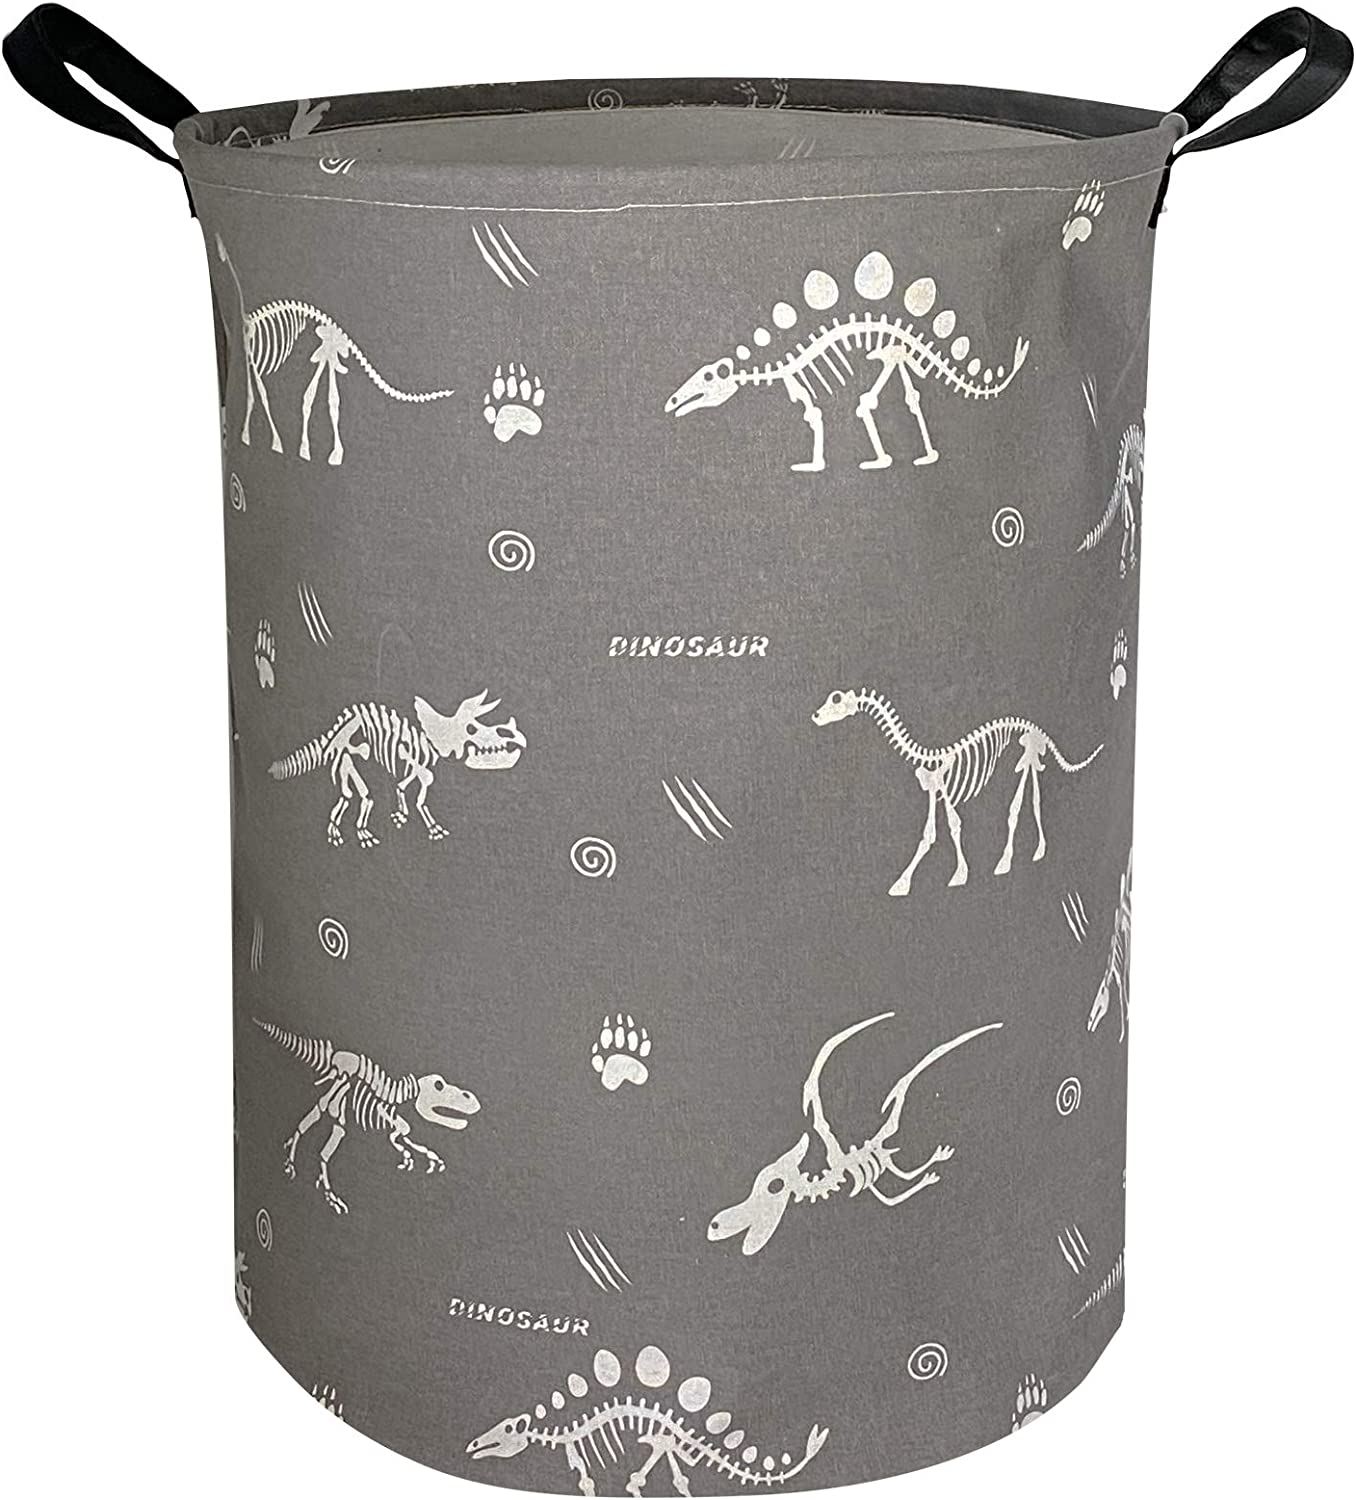 NTAOHAMPER Round Dinosaur Laundry H Canvas Don't miss the campaign Department store Fabric Basket